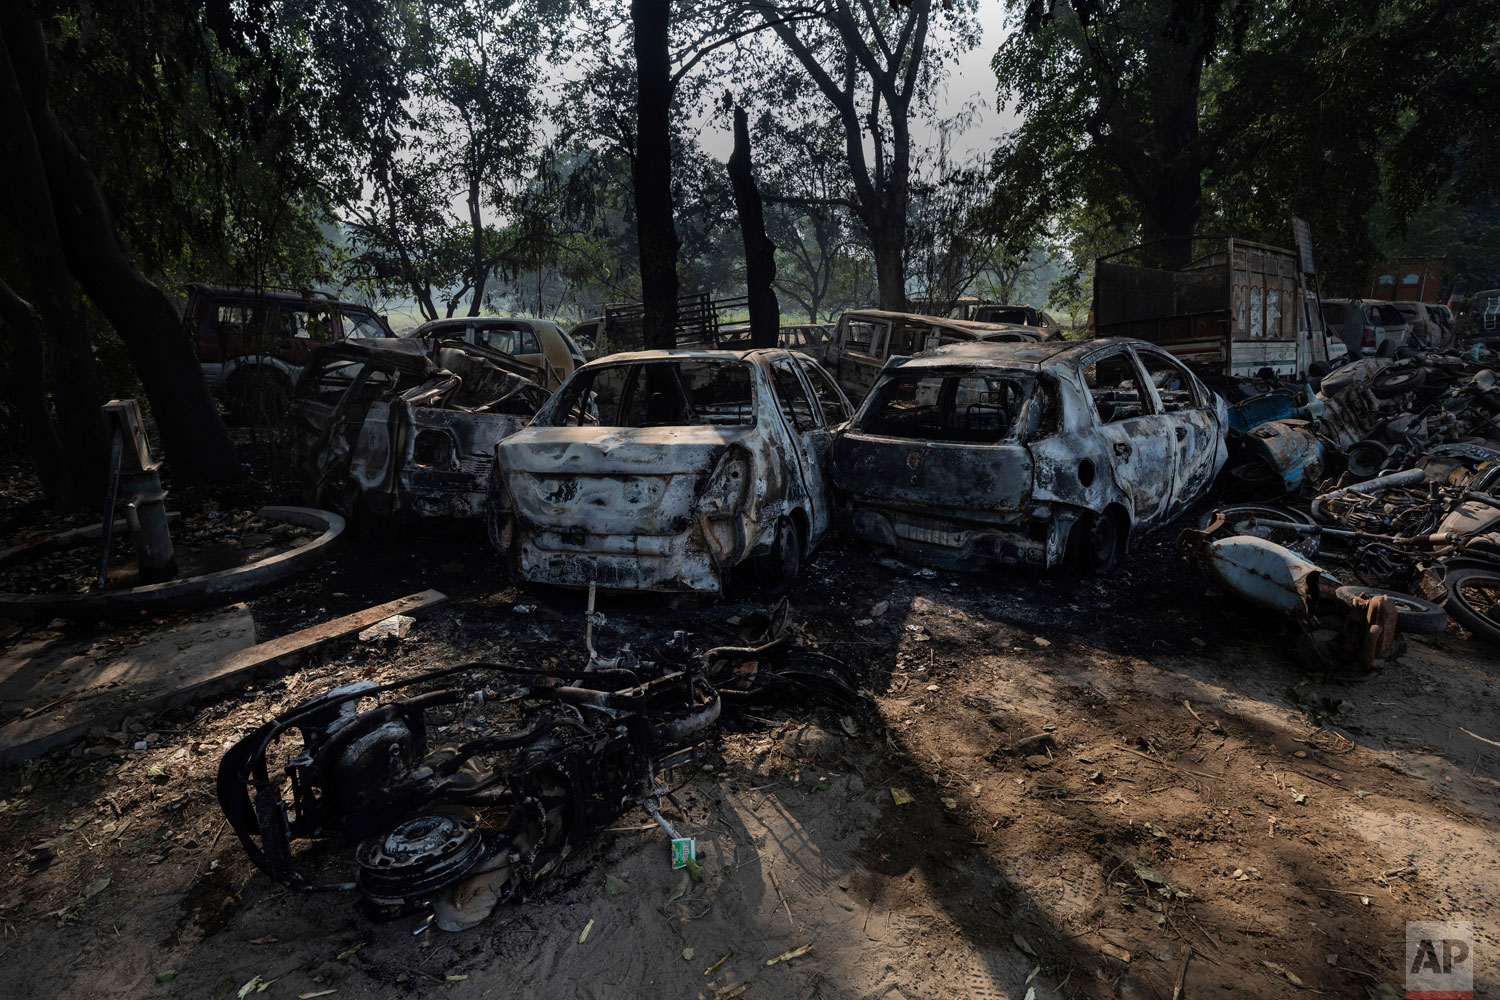 This Tuesday, Dec. 4, 2018 photo shows vandalized cars and other vehicles in Chingarwathi, near Bulandshahr, in the northern Indian state of Uttar Pradesh. The previous day, two people were killed in mob violence that began with accusations of cow slaughter in the area. About 280 people were injured in more than 100 attacks by vigilantes between May 2015 and December 2018, Human Rights Watch said in a recent report. (AP Photo/Bernat Armangue)